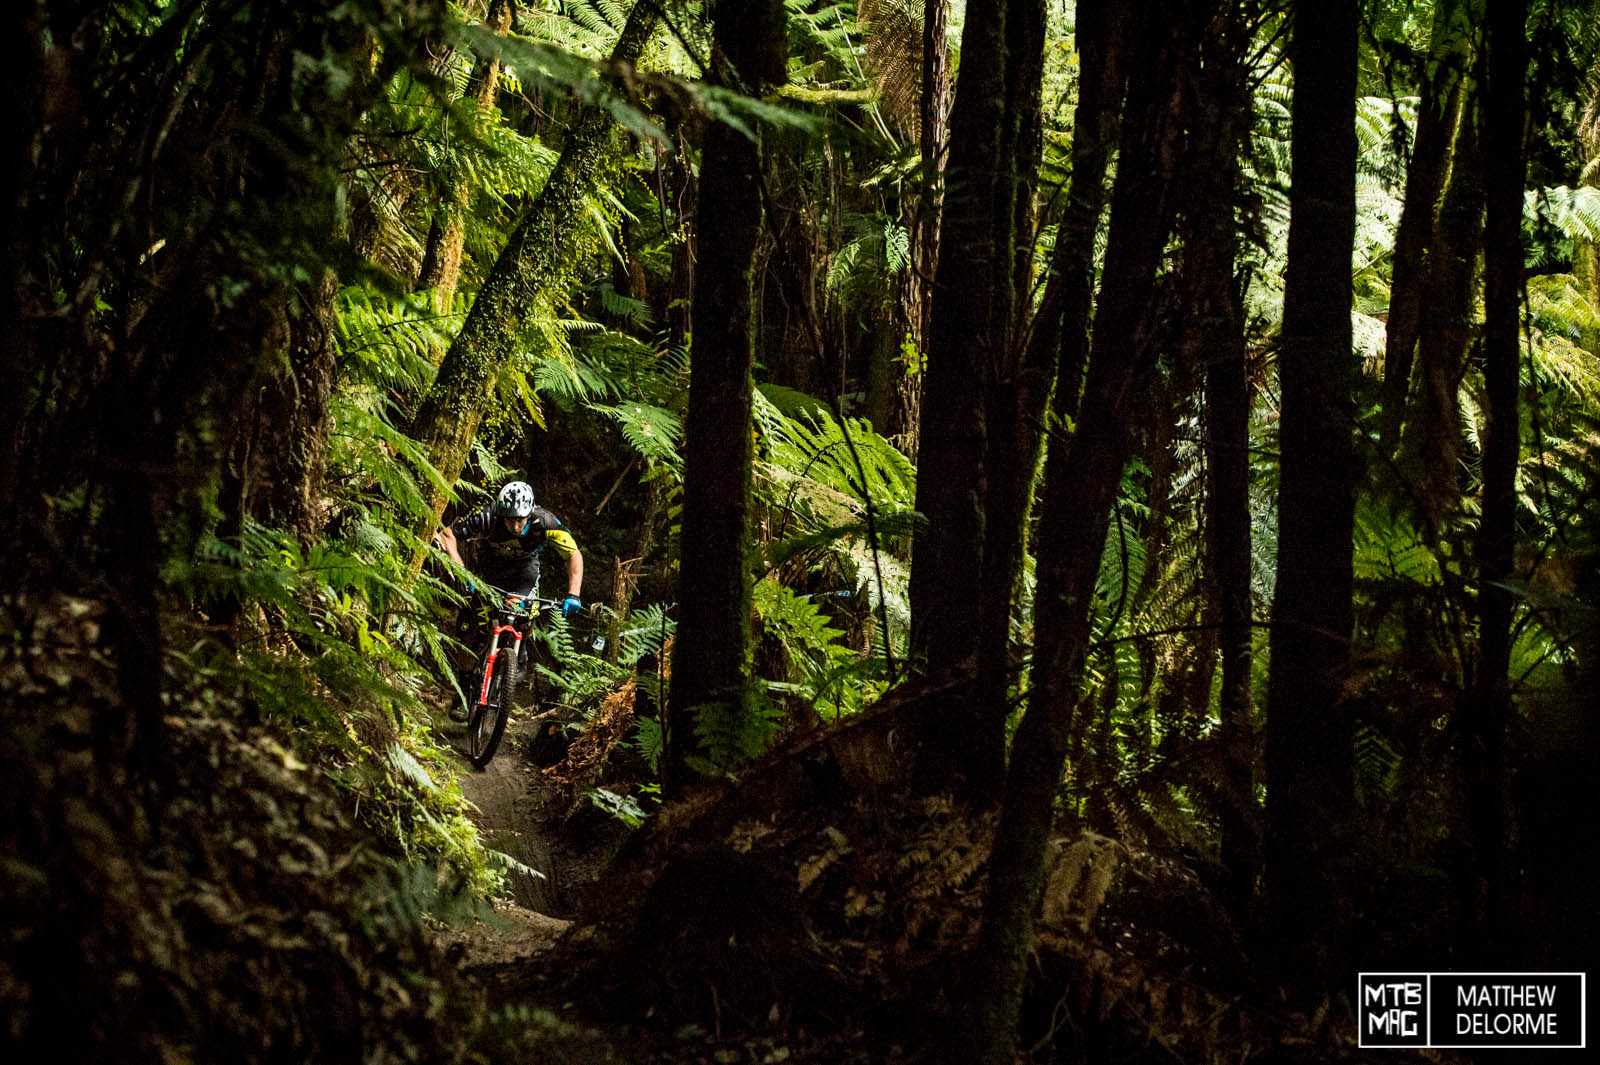 The woods were dark and sick this morning when the riders set out on stage one.